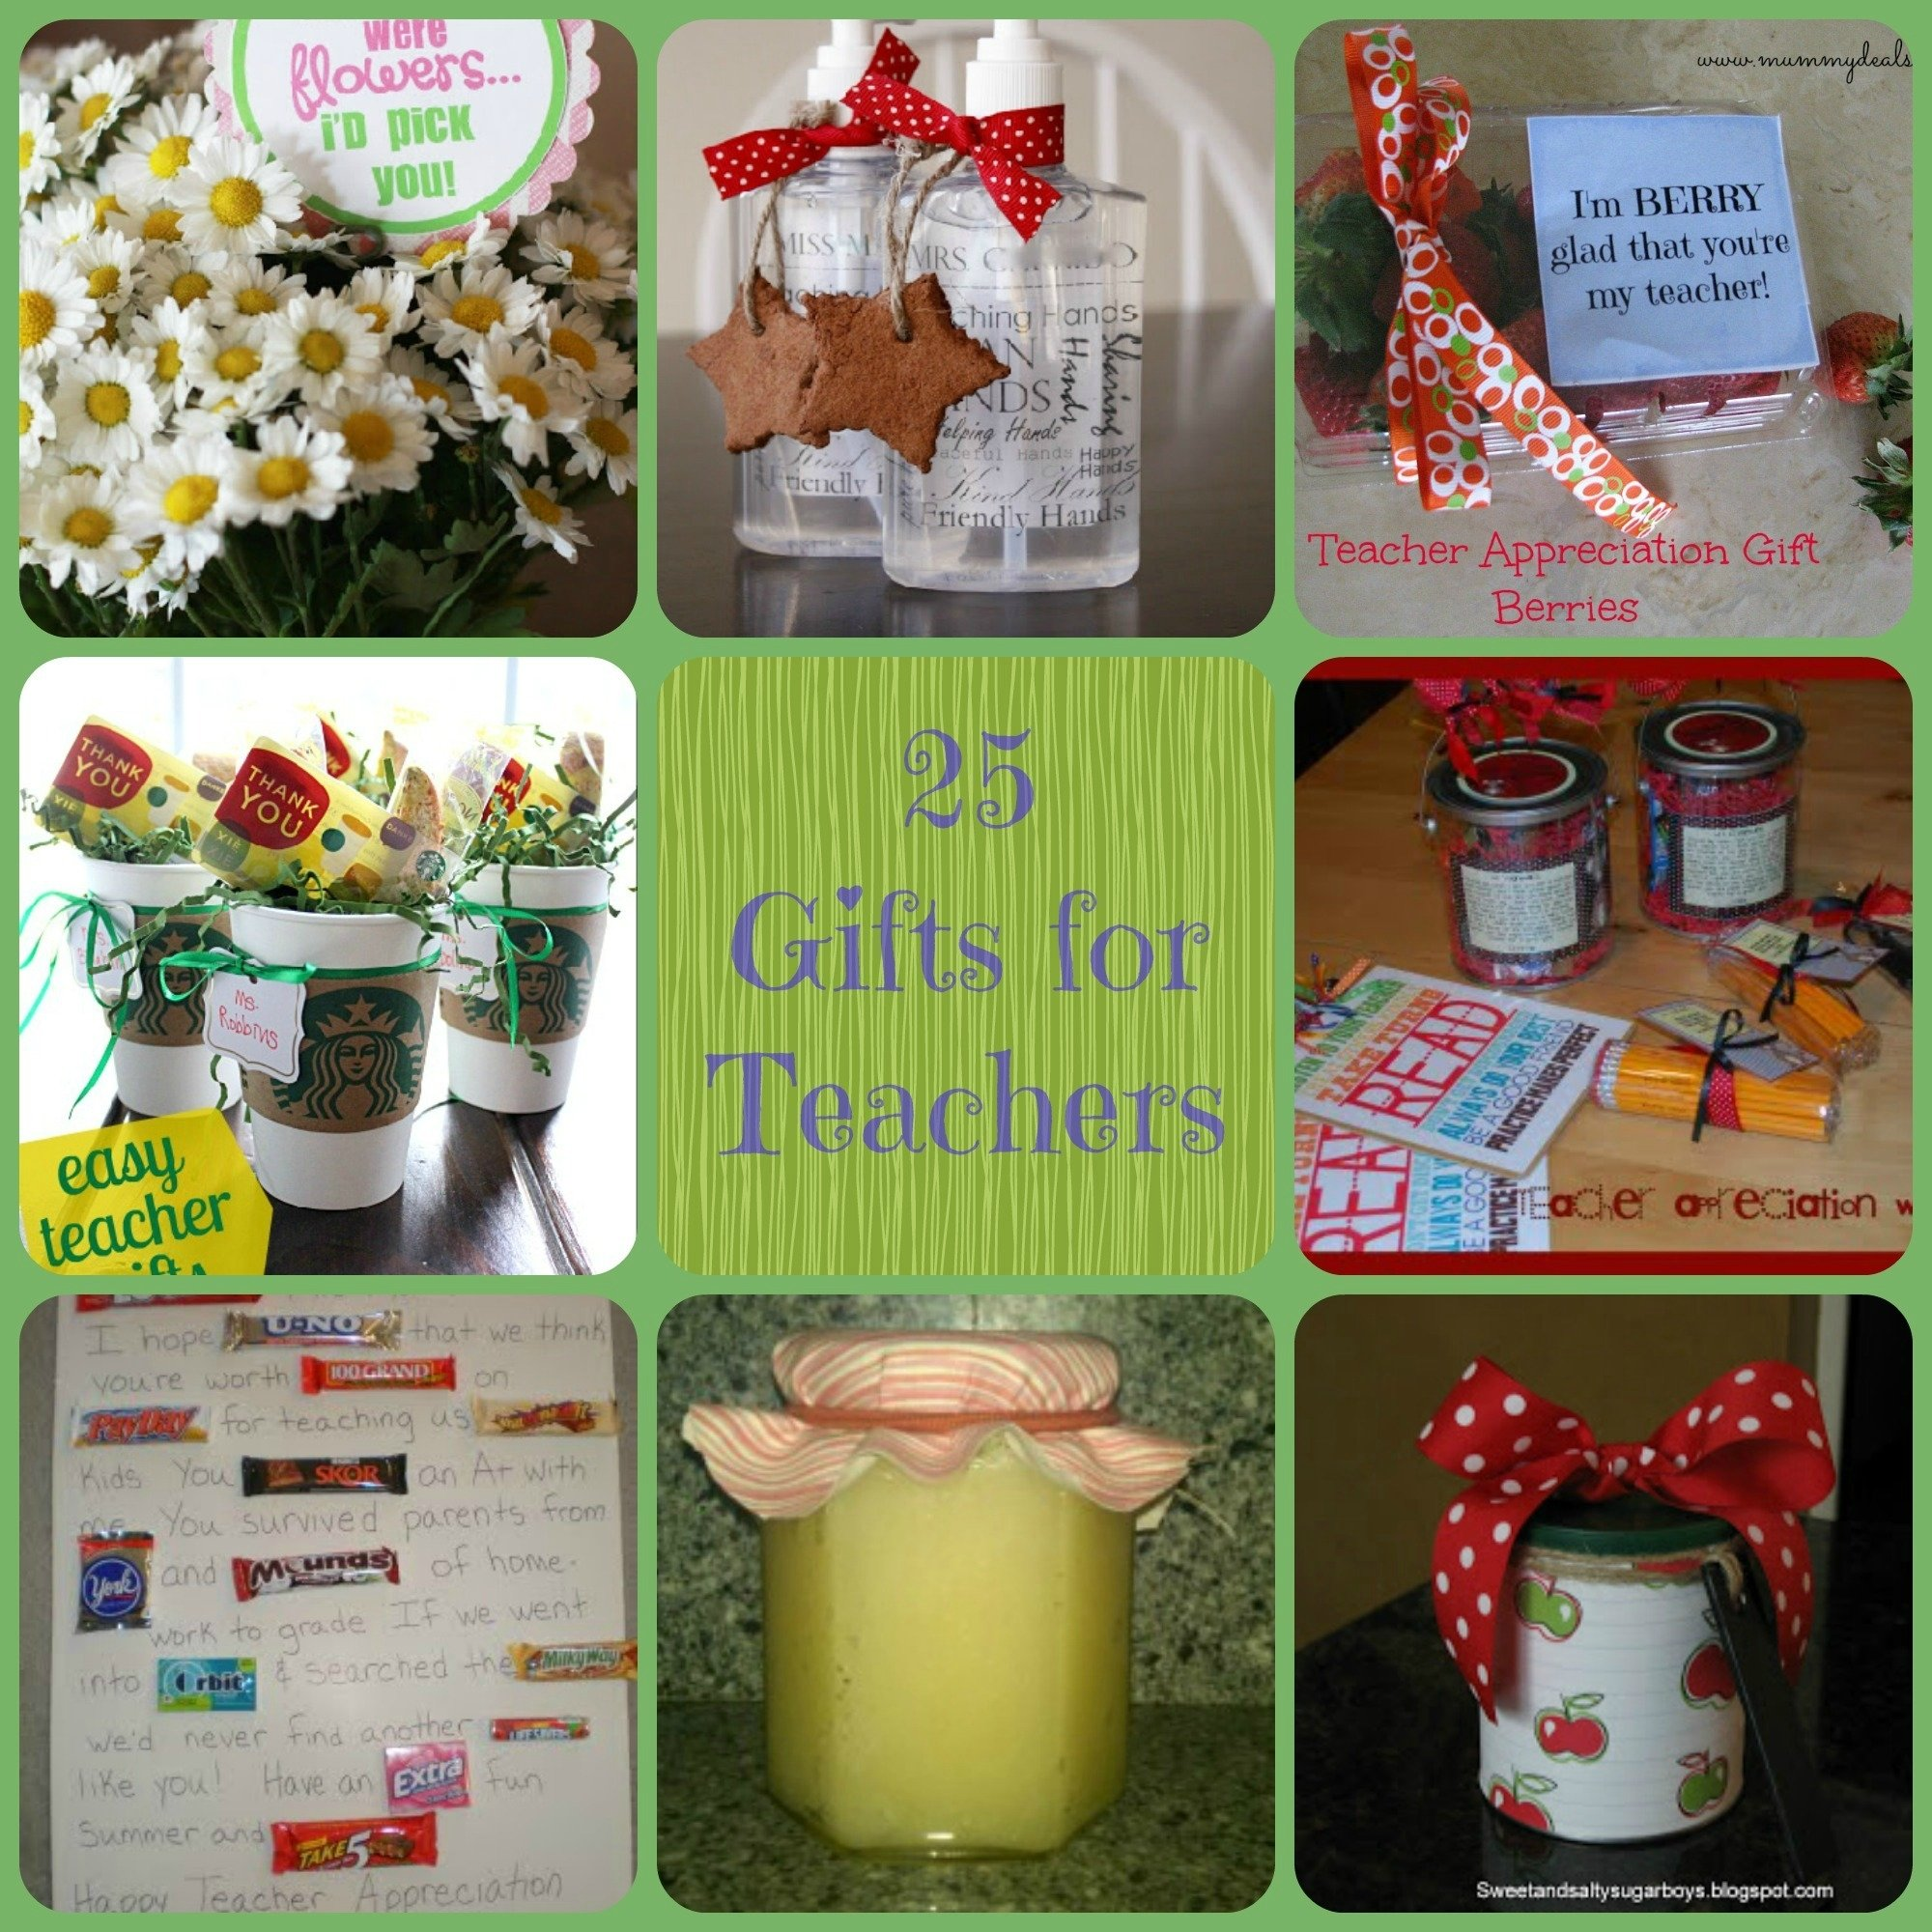 10 Spectacular Thank You Ideas For Teachers 25 teacher gift ideas farmers wife rambles 1 2020